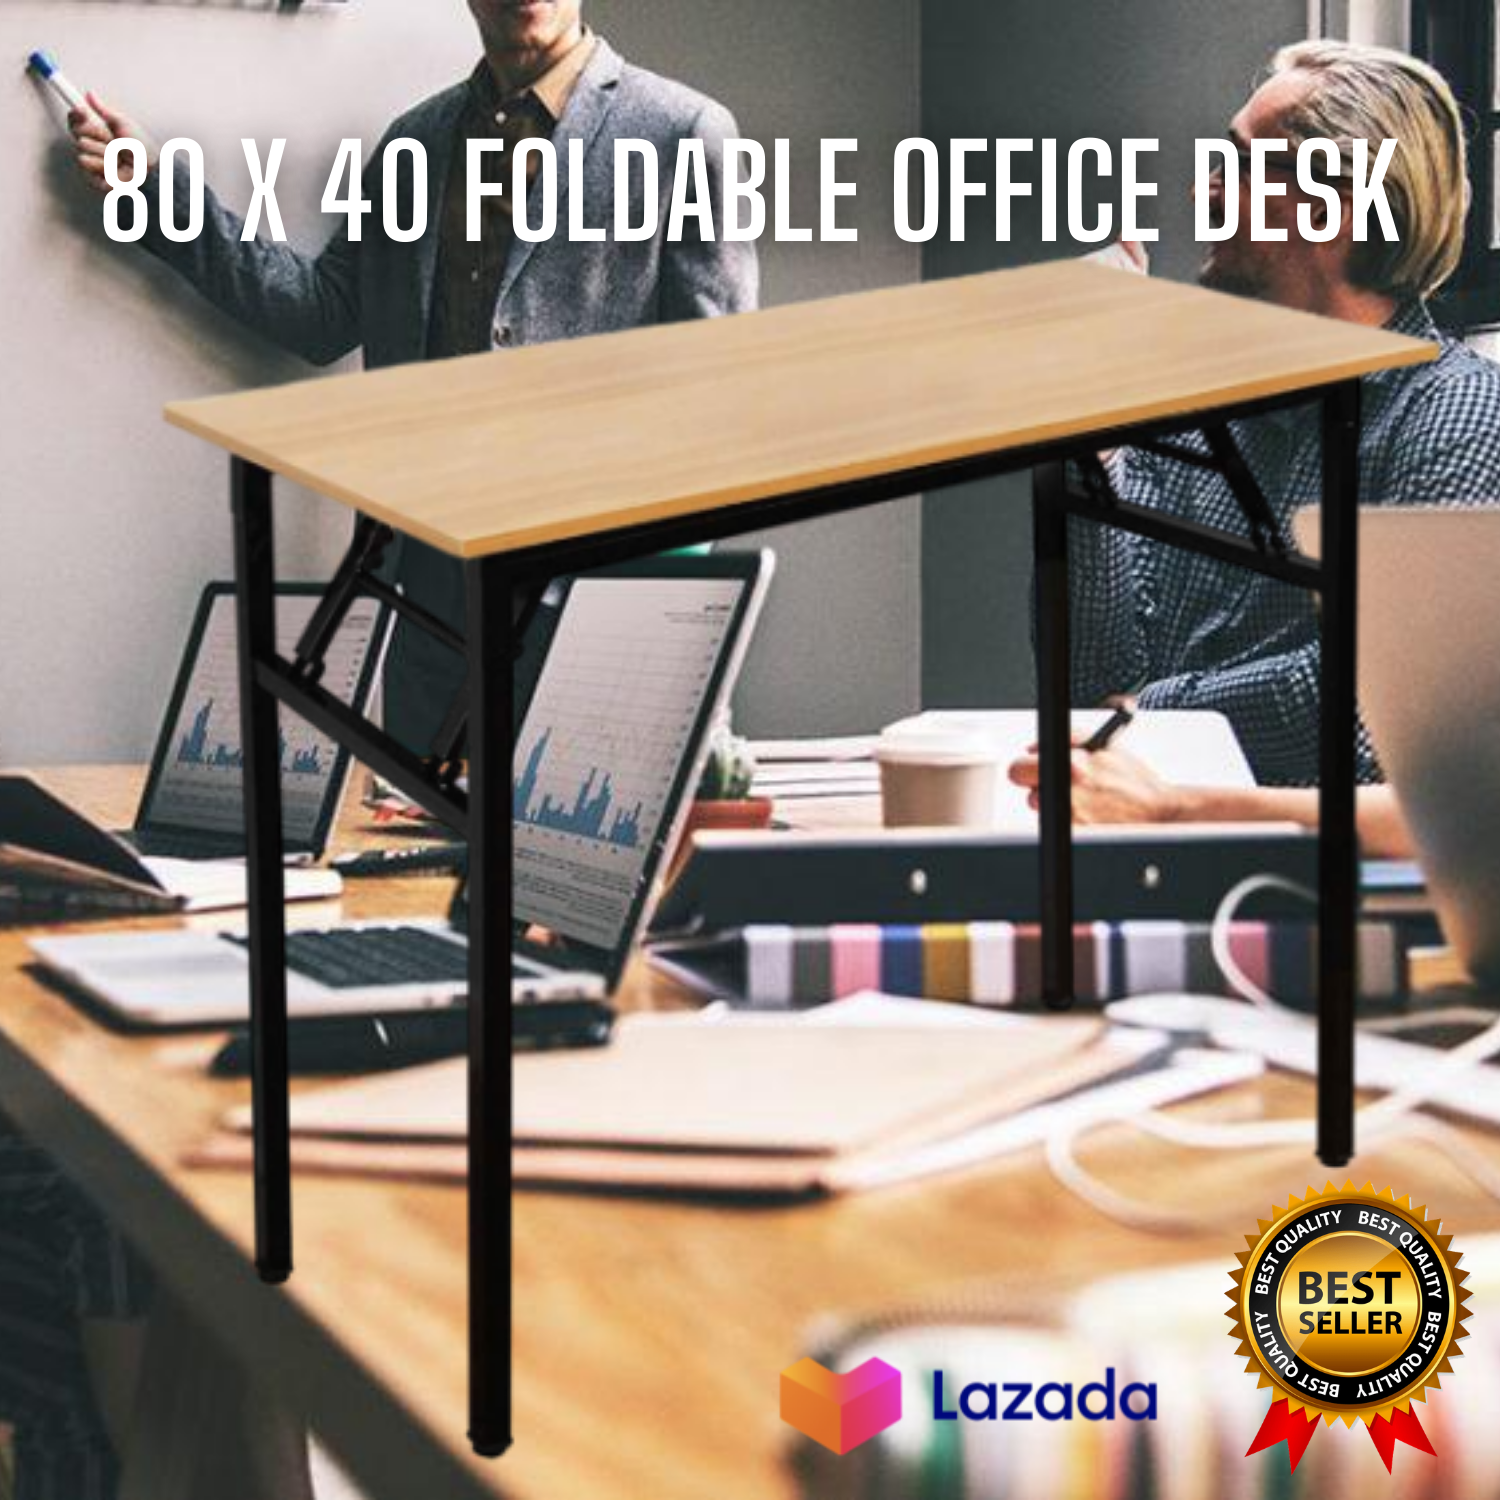 High Quality Foldable Office Desk Foldable Table Wood Table Home Office Furniture Space Saver Portable Easy To Use Lazada Ph